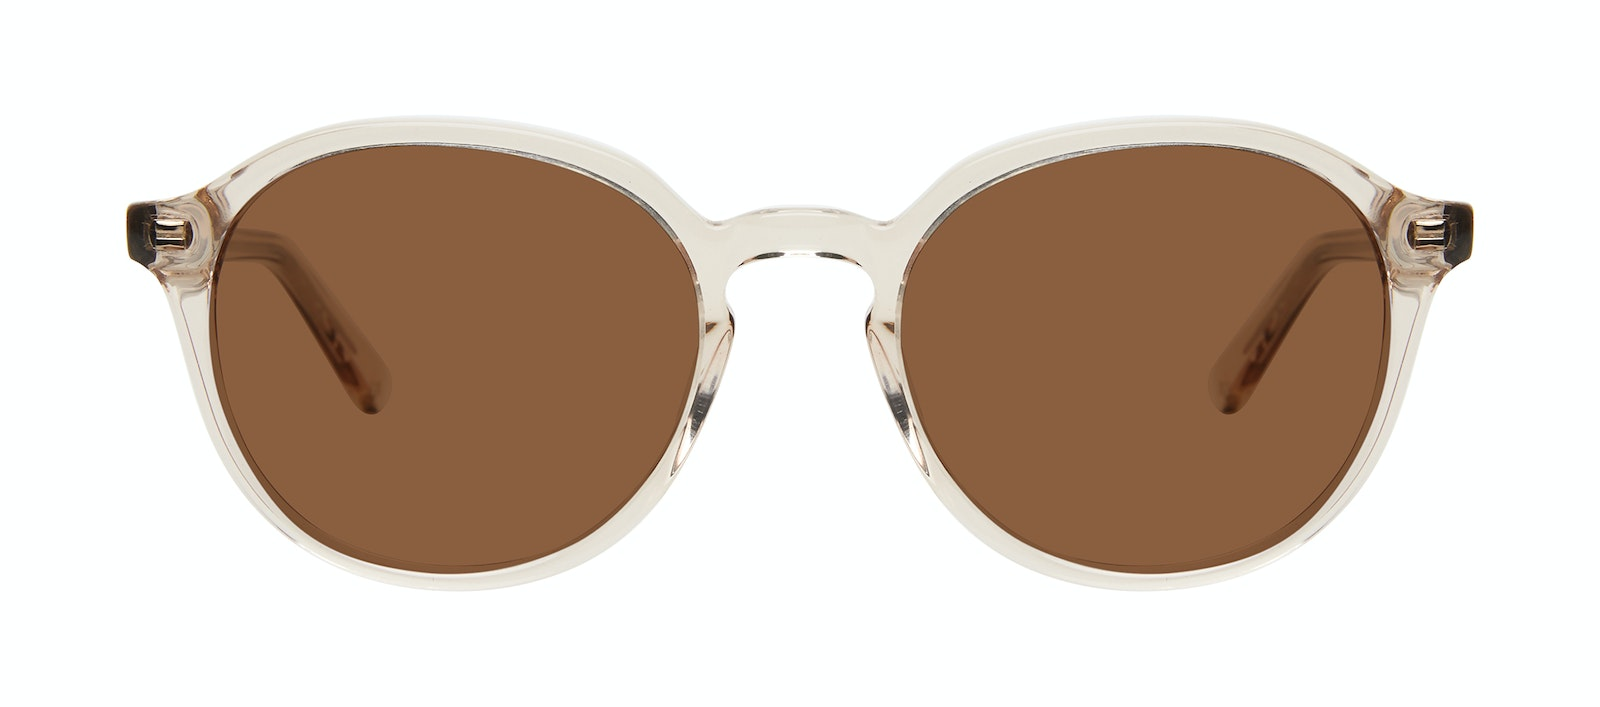 Affordable Fashion Glasses Round Sunglasses Men Ansel Golden Front